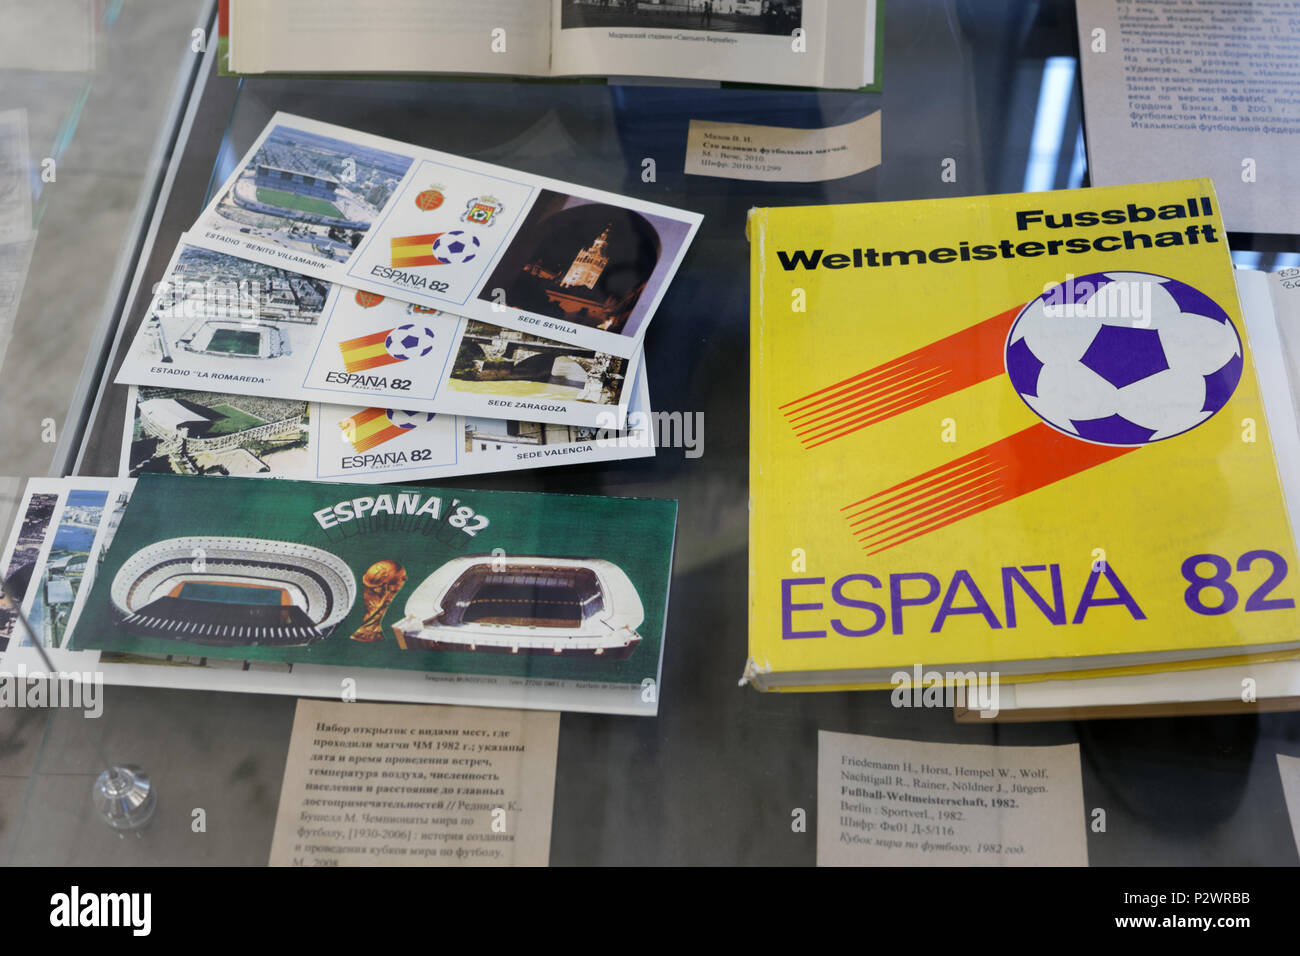 St. Petersburg, Russia - June 7, 2018: Exhibition 'Goal!!! FIFA World Cups history' in the National Library of Russia. The exhibition is dedicated to  - Stock Image